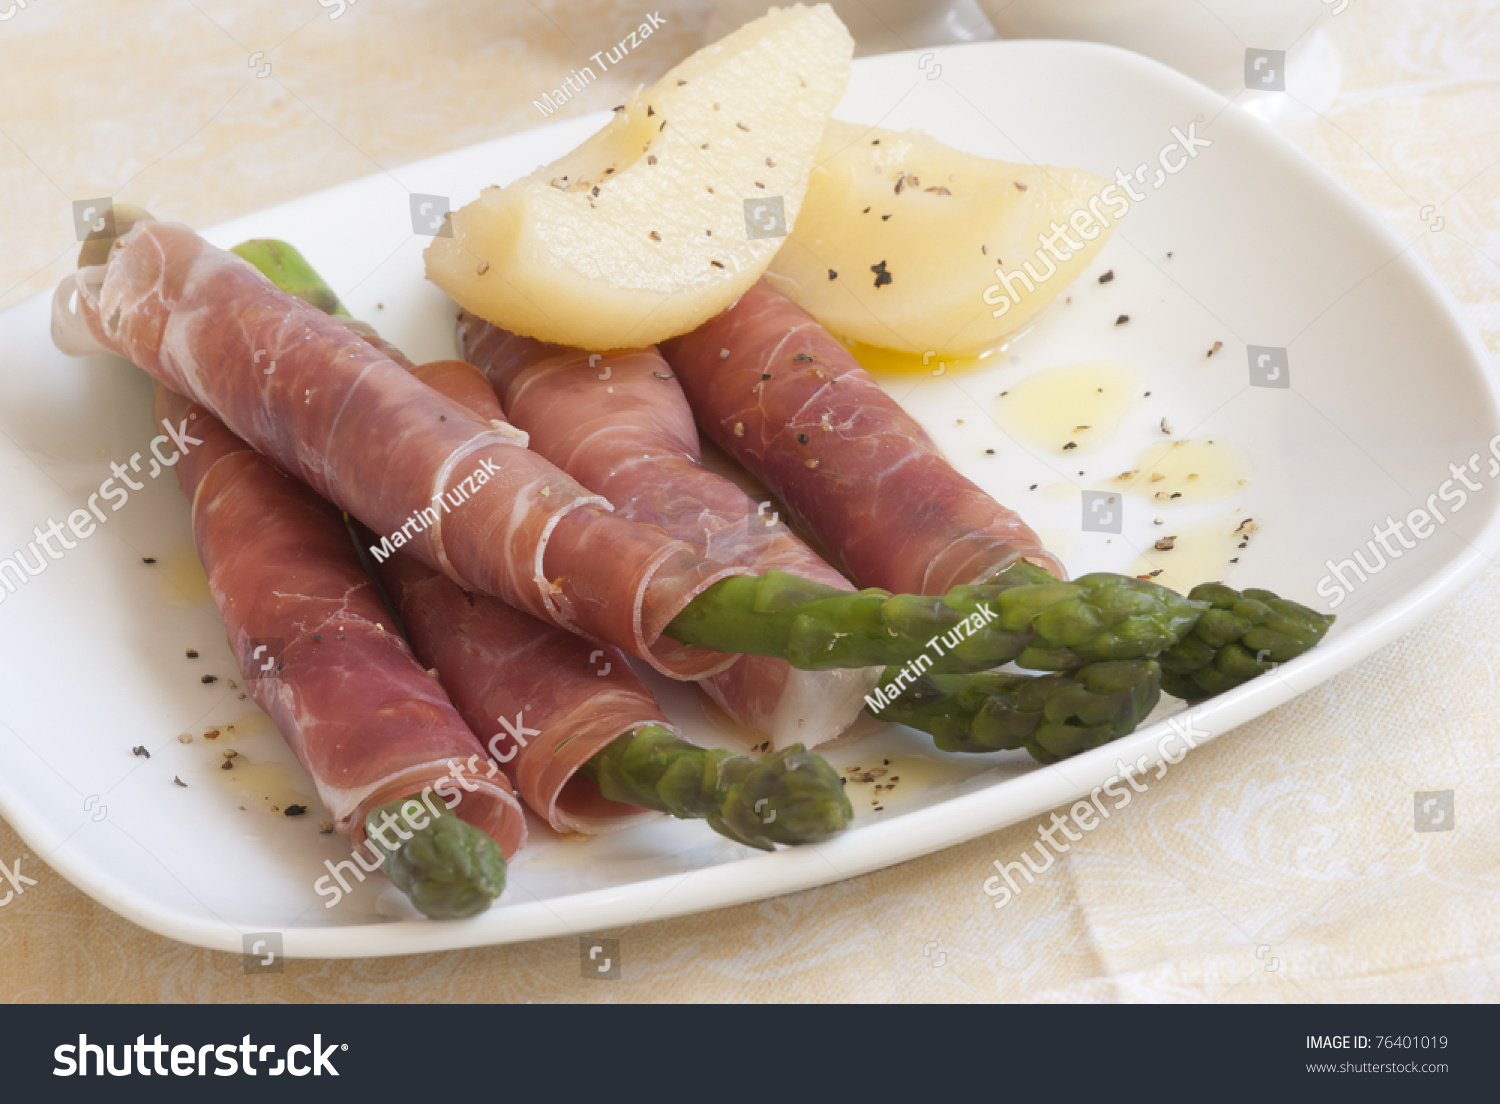 Cooked Asparagus Coated In Parma Ham With Pears On A Plate Preview Save To  A Lightbox